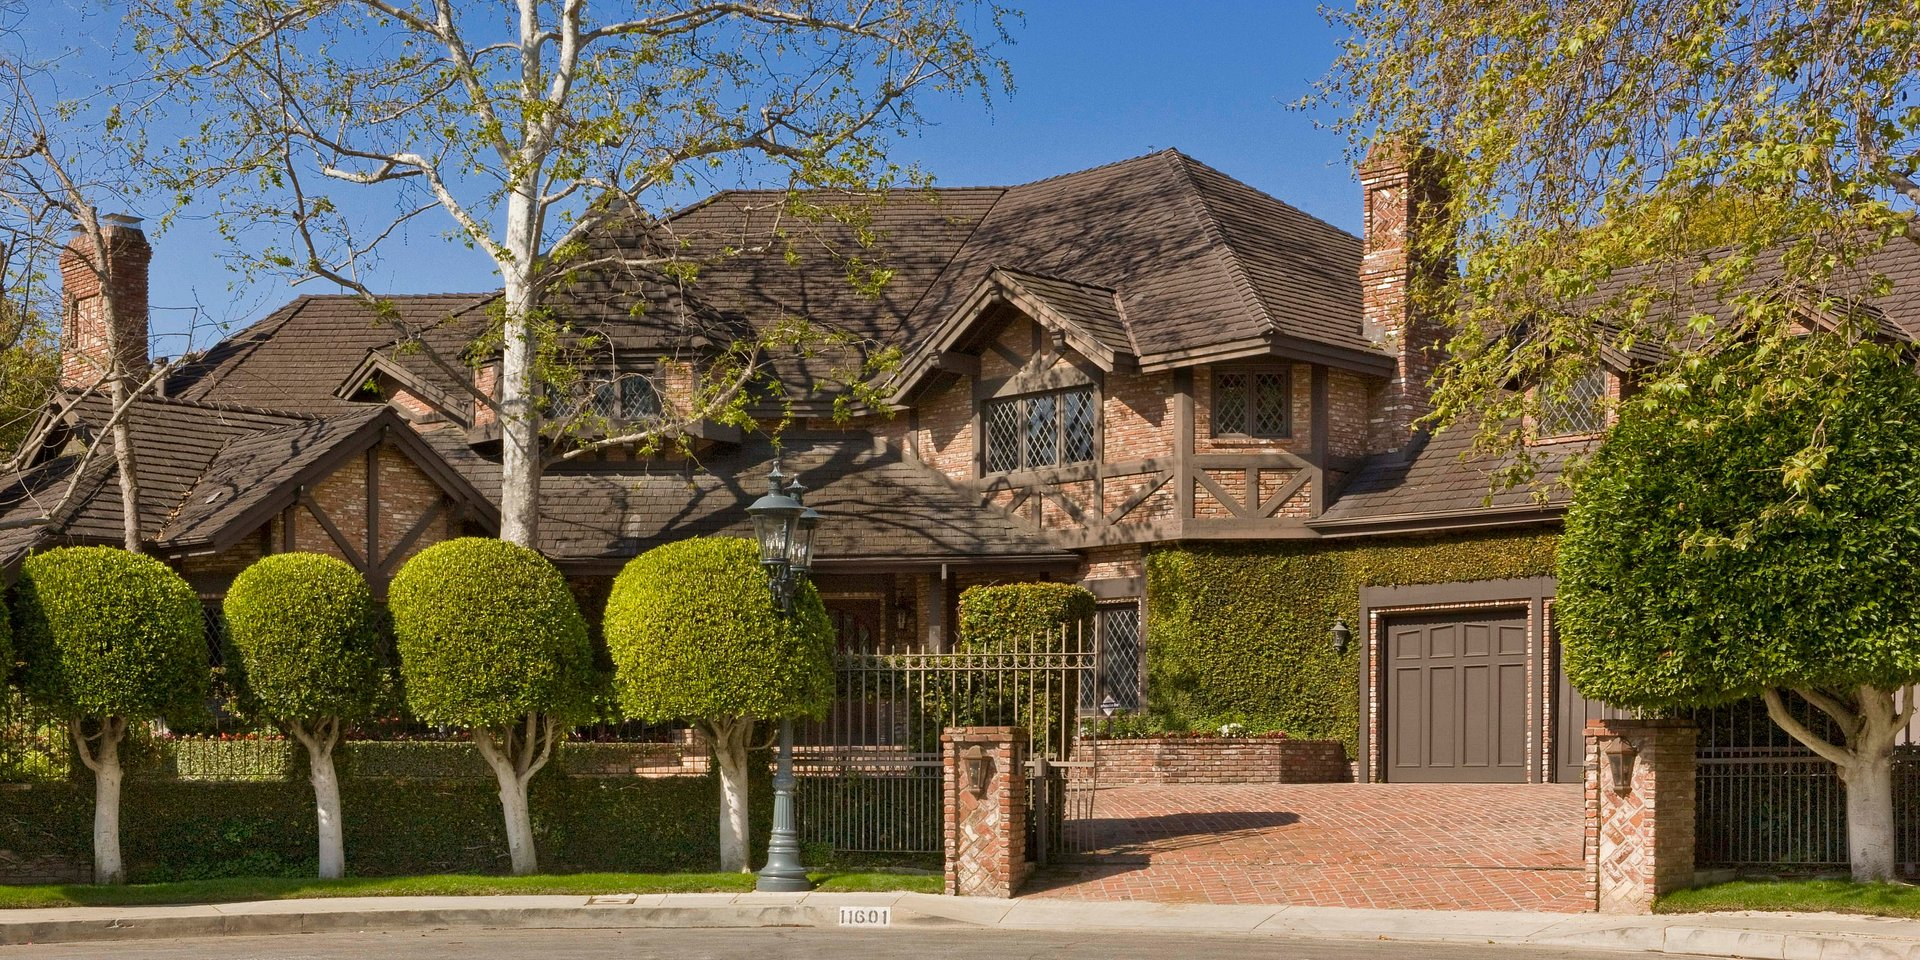 Coldwell Banker Residential Brokerage Lists Los Angeles Property for $7.2 Million